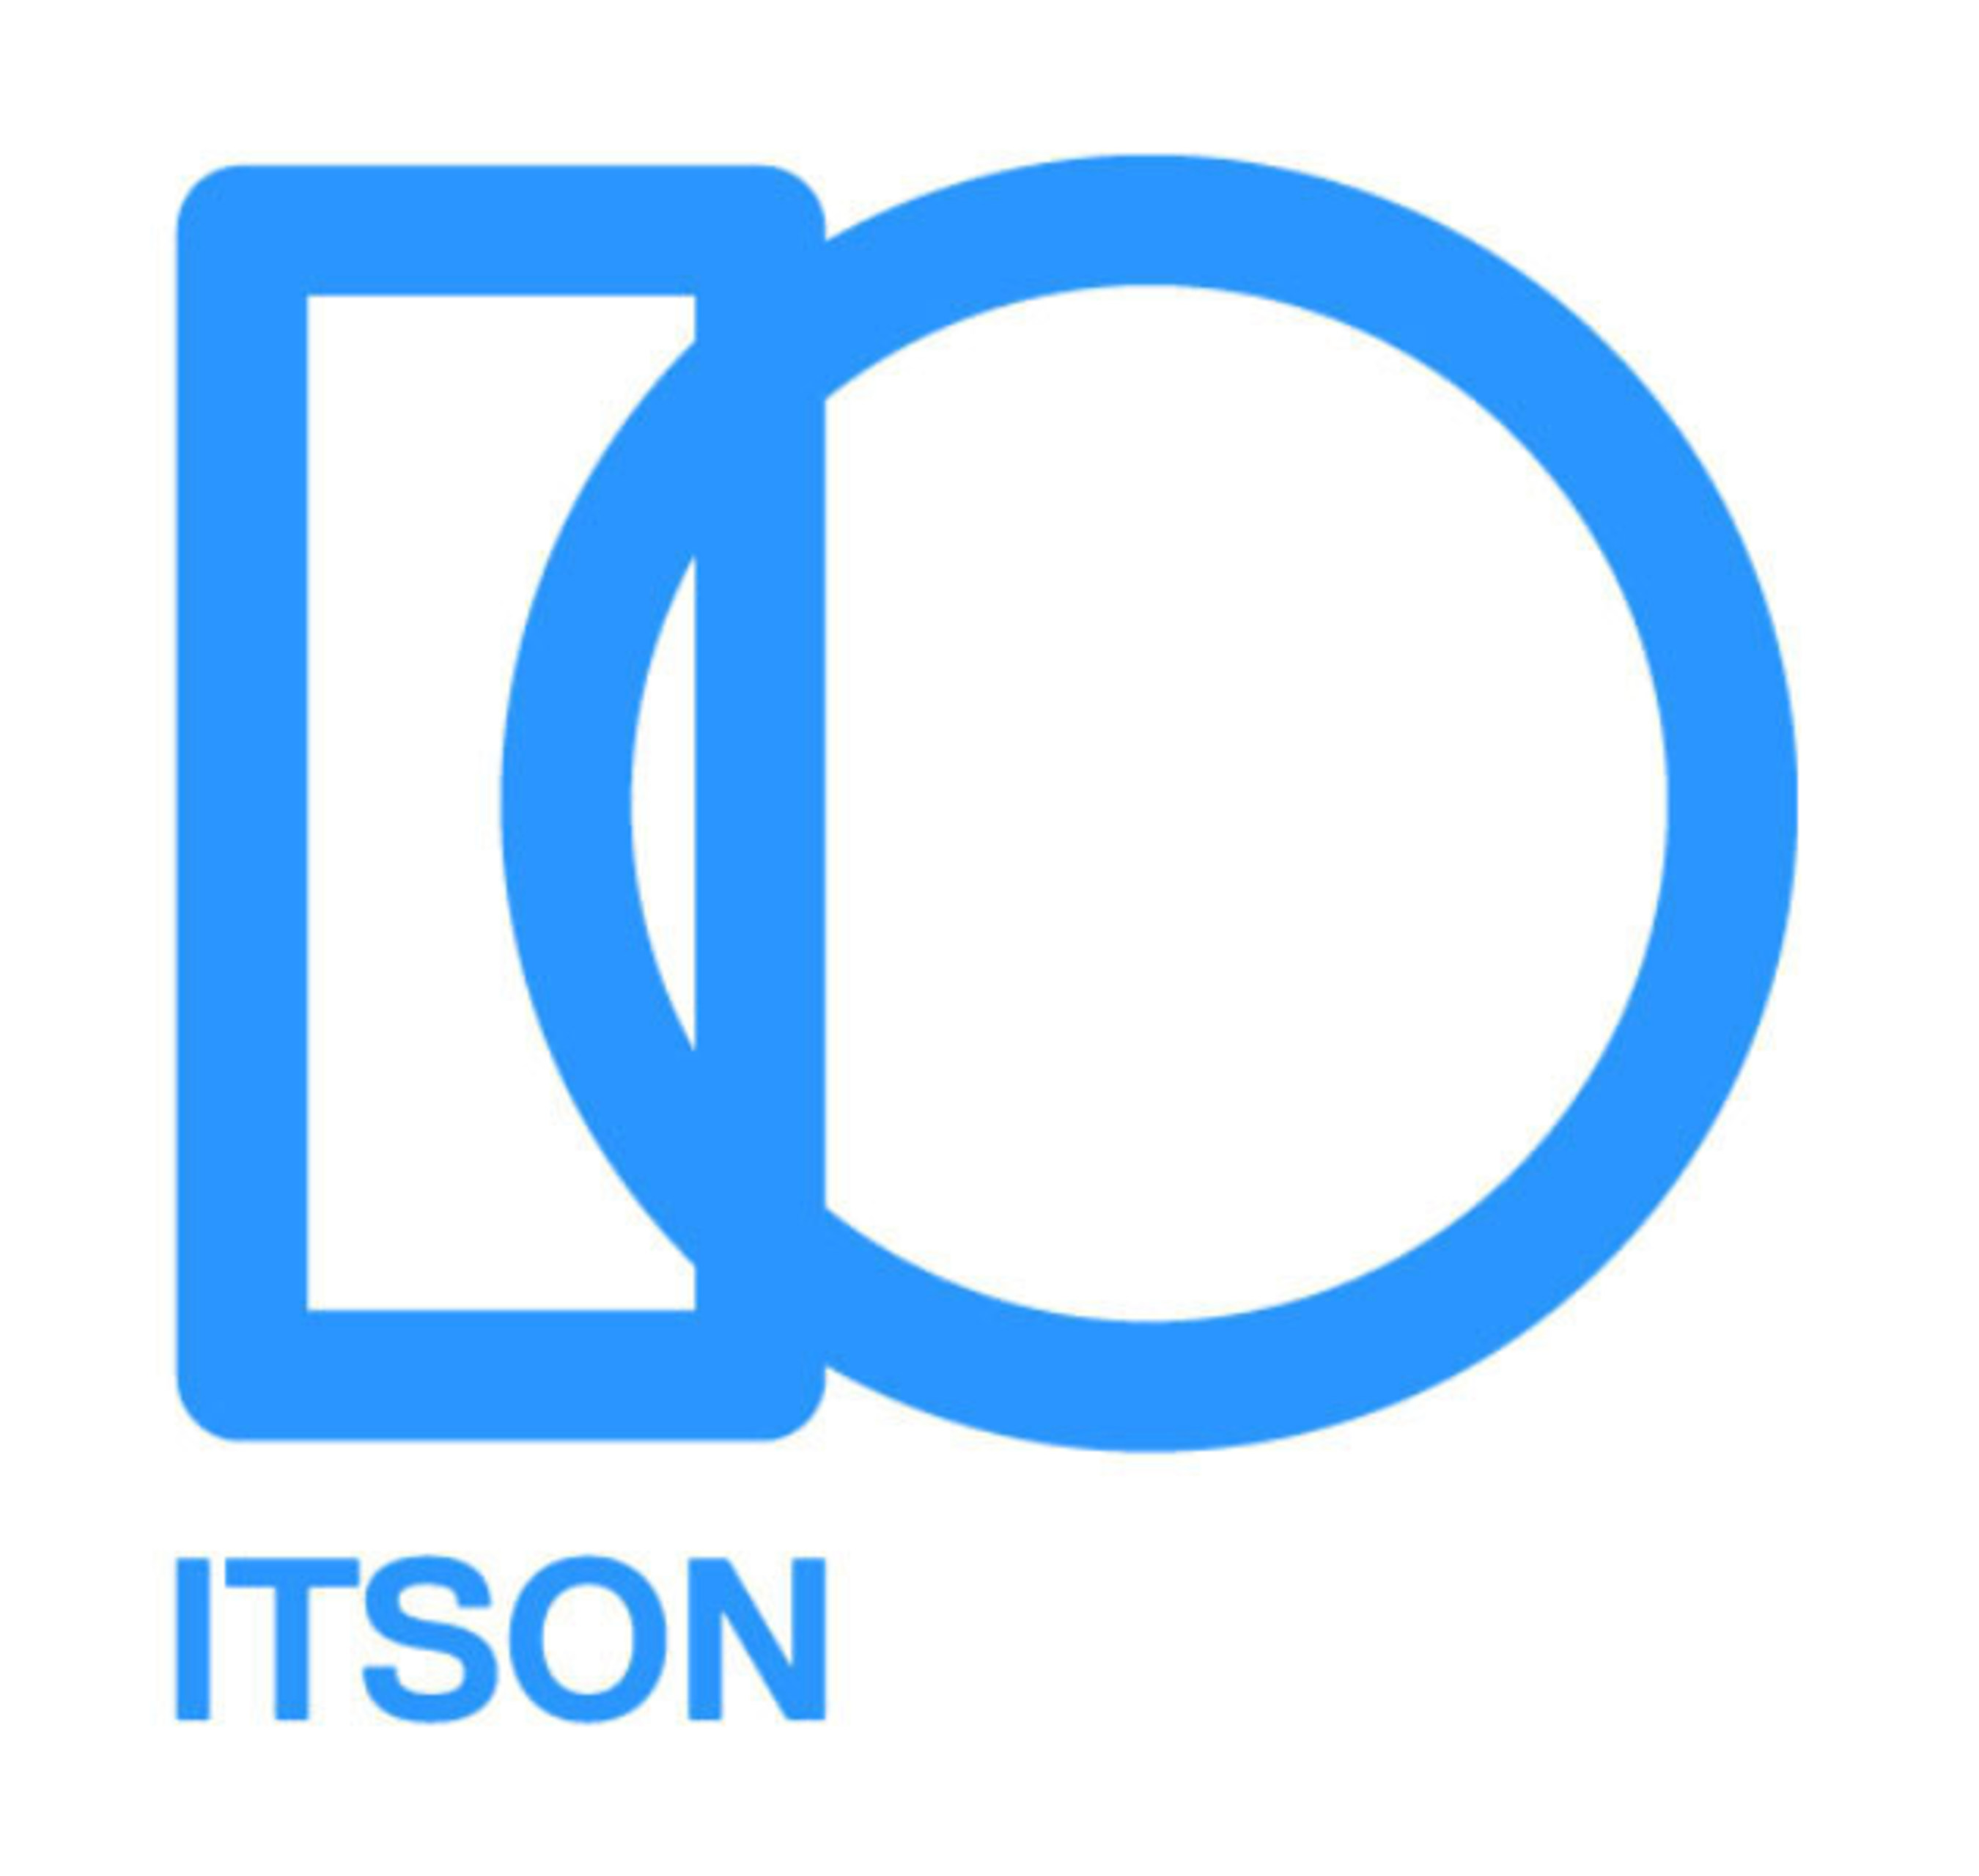 ItsOn Recognized by Panel of Top Telecommunications Companies as Finalist in Fierce Innovation